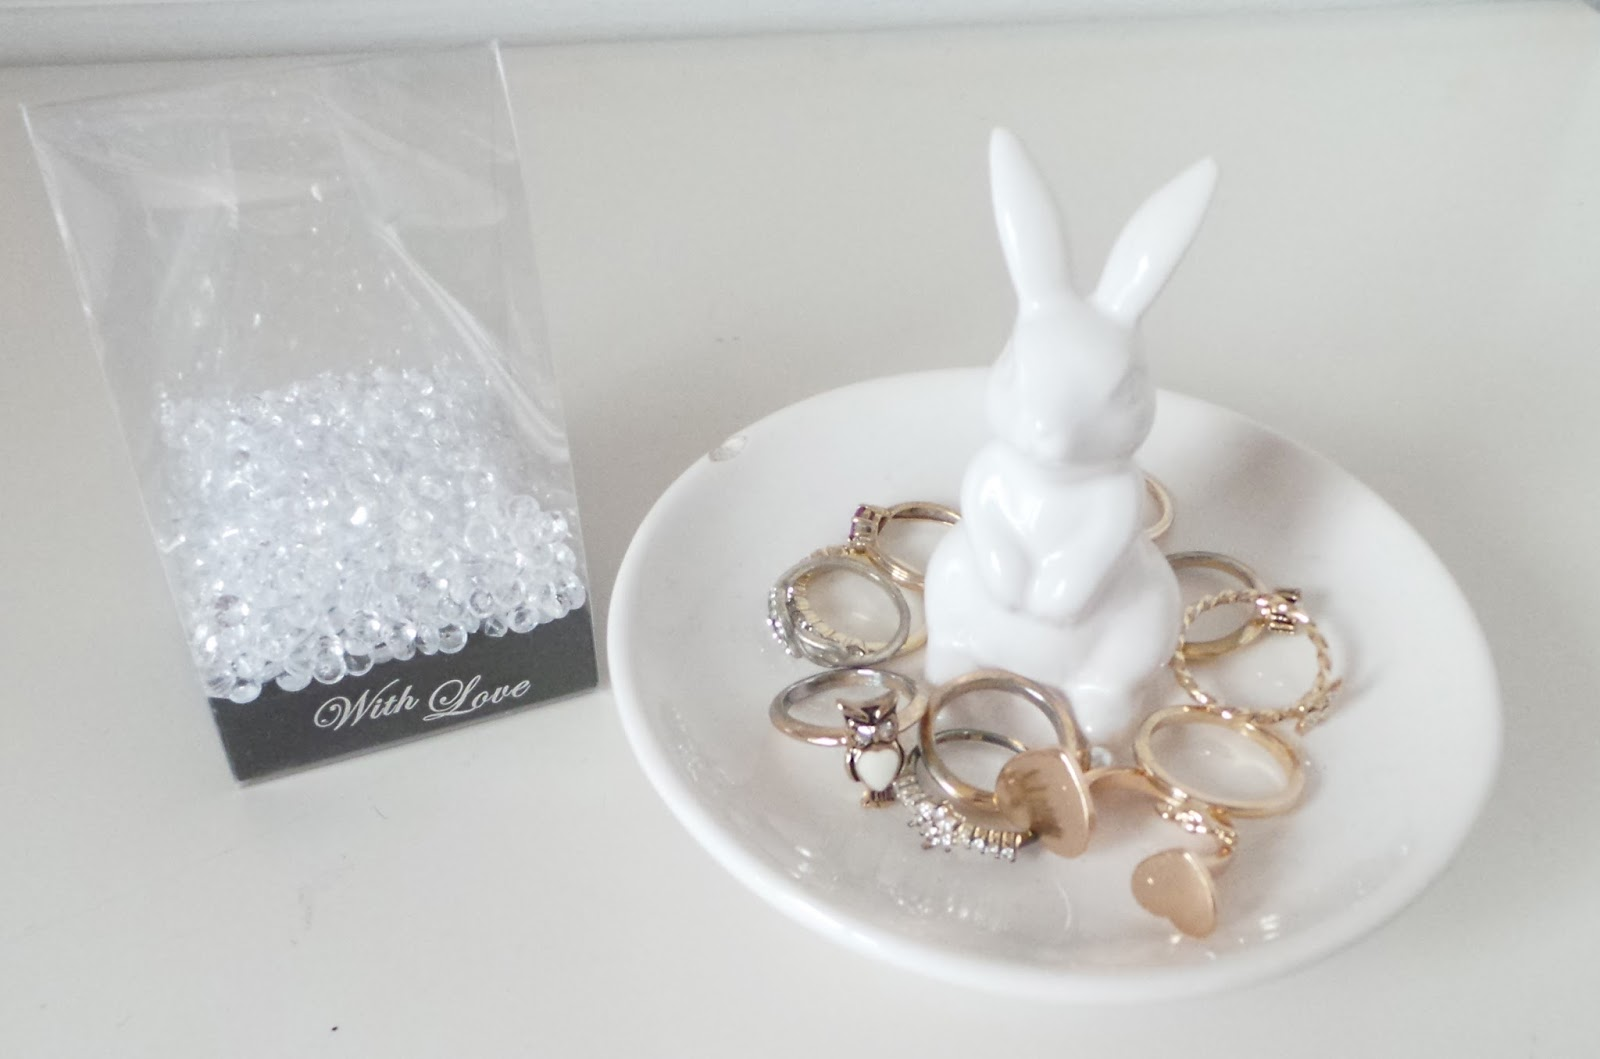 Laura's All Made Up - Home Haul - The Range Diamond Scatters, Vintage Bunny Ring Holder Dish, Home